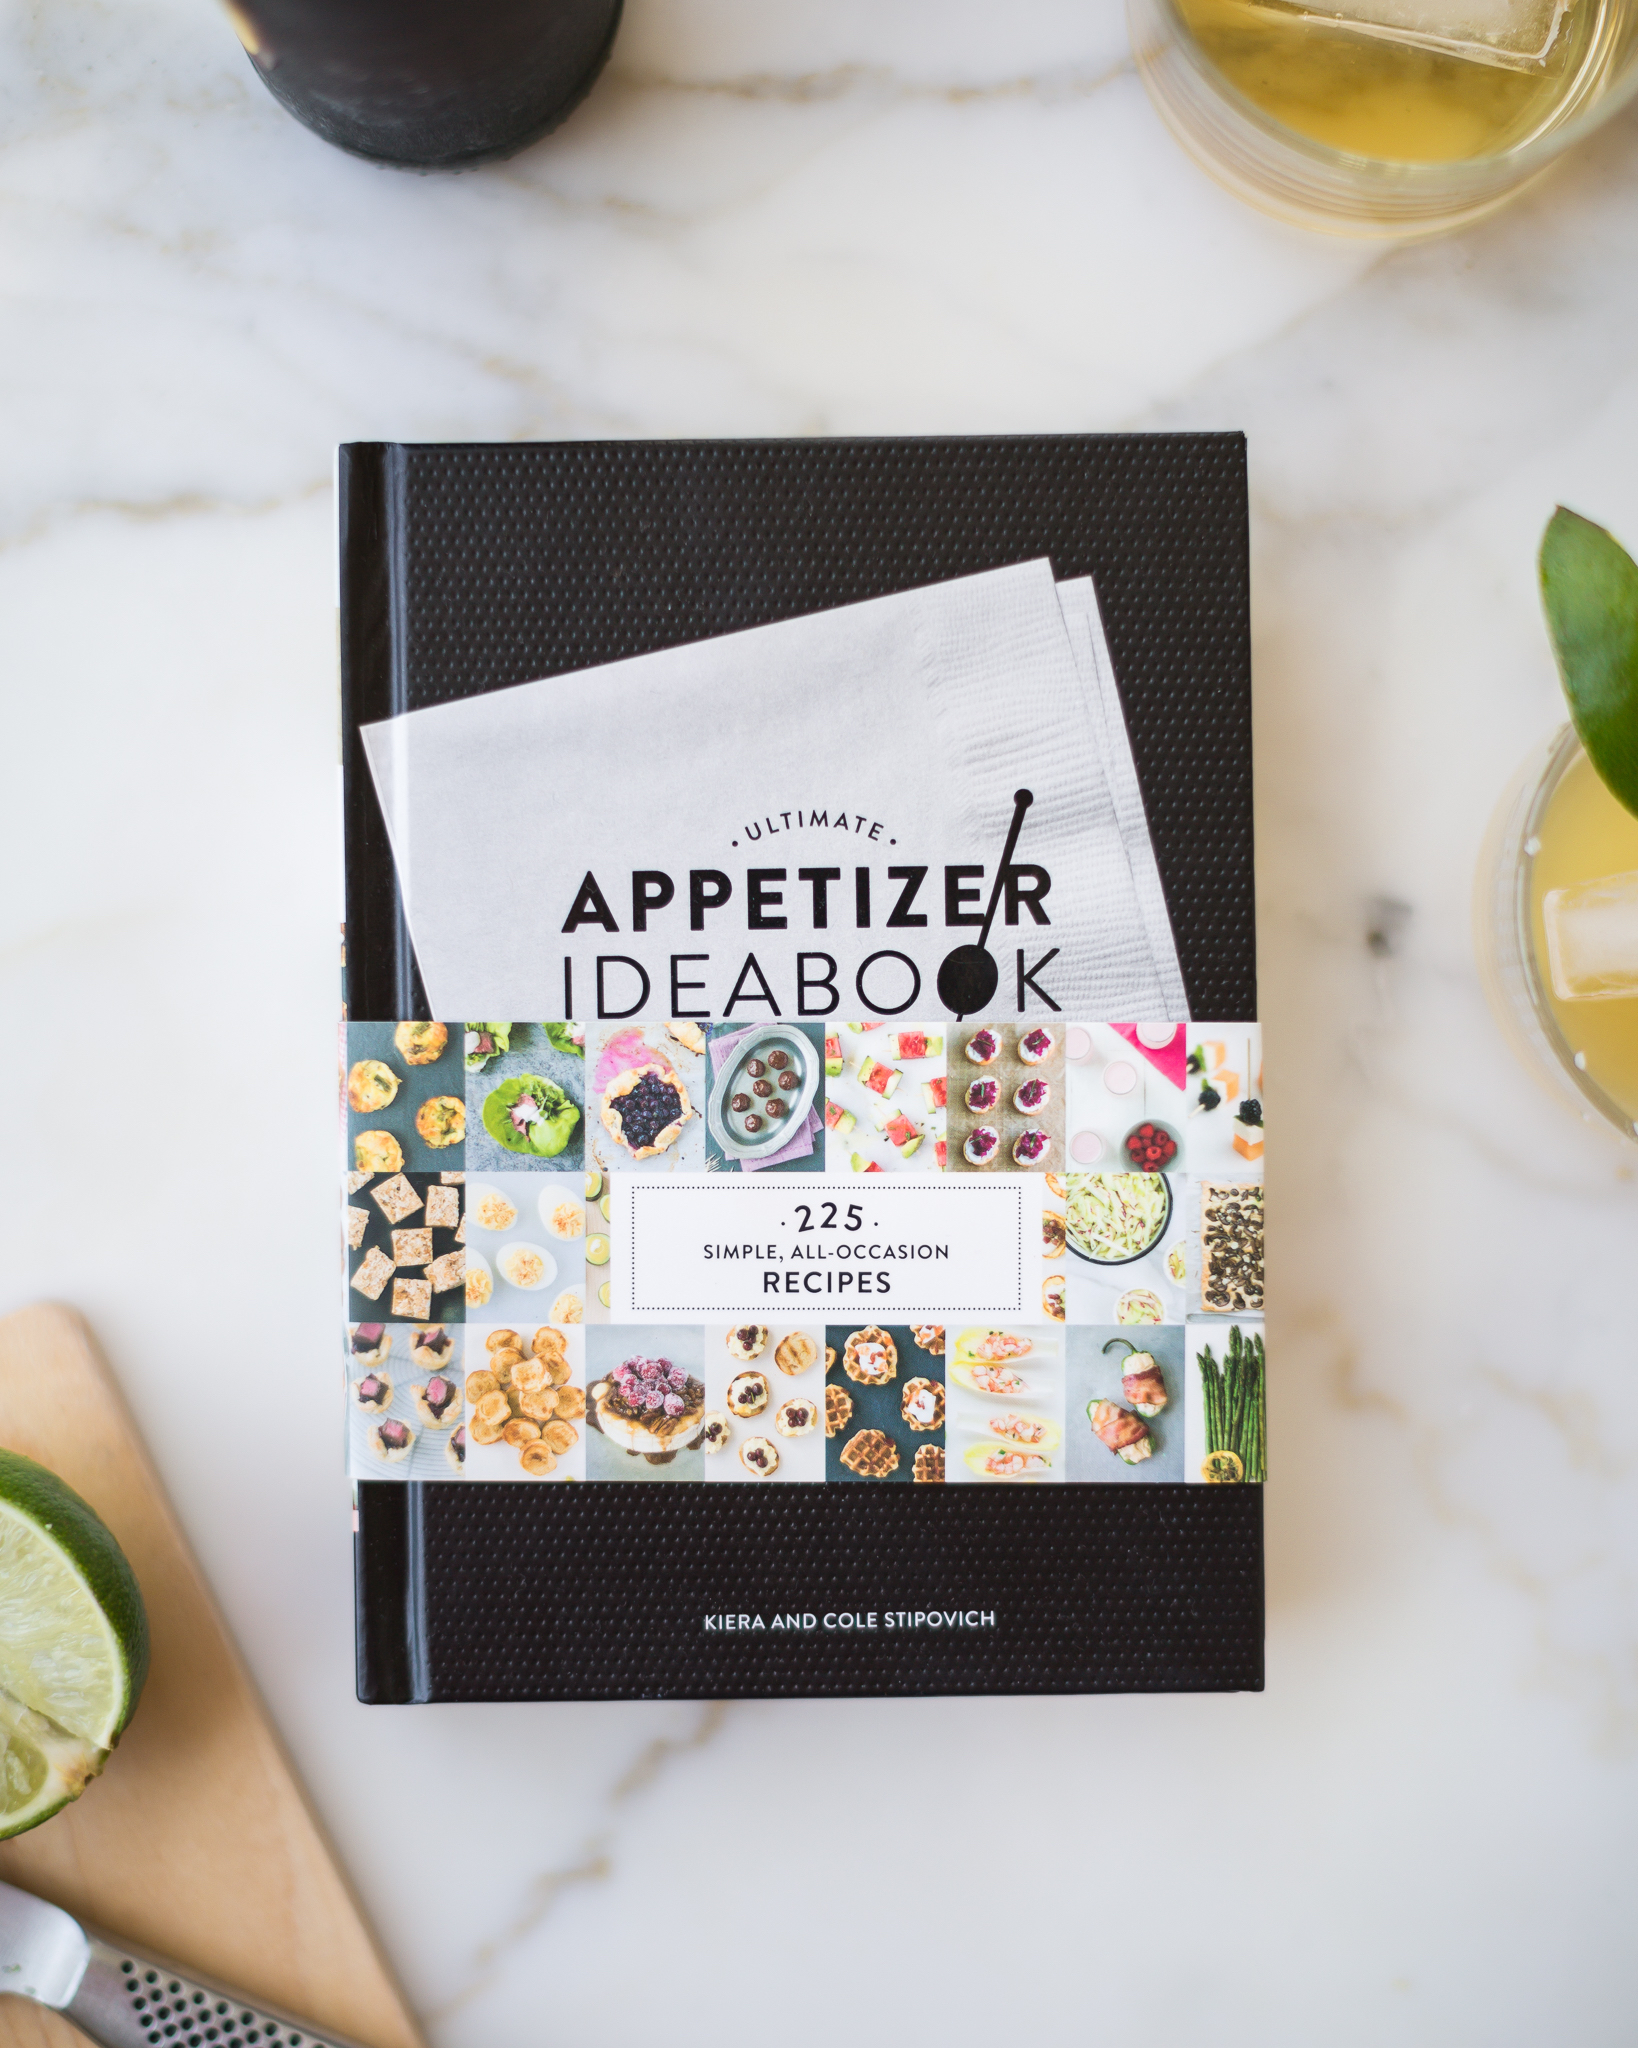 UltimateAppetizerIdeabook-Cover